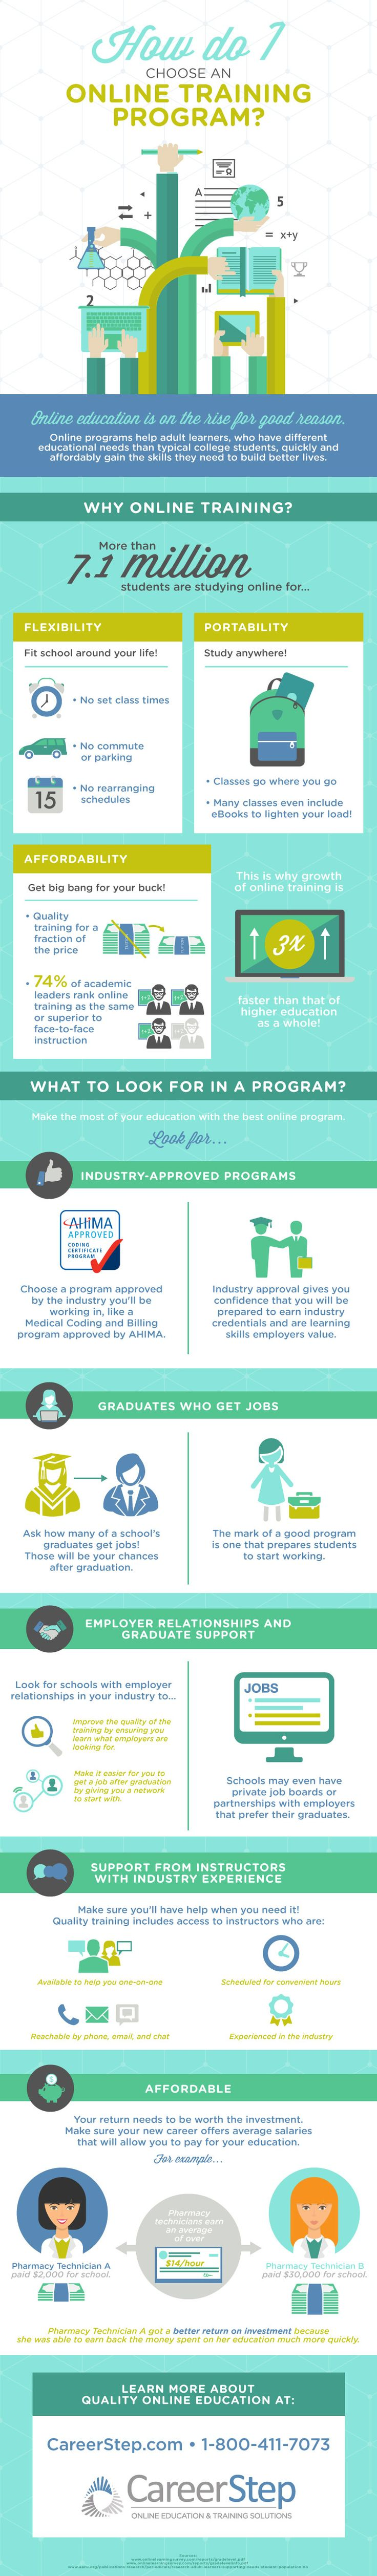 Infographic: How to Choose an Online Program http://www.careerstep.com/how-to-choose-the-best-online-program-infographic